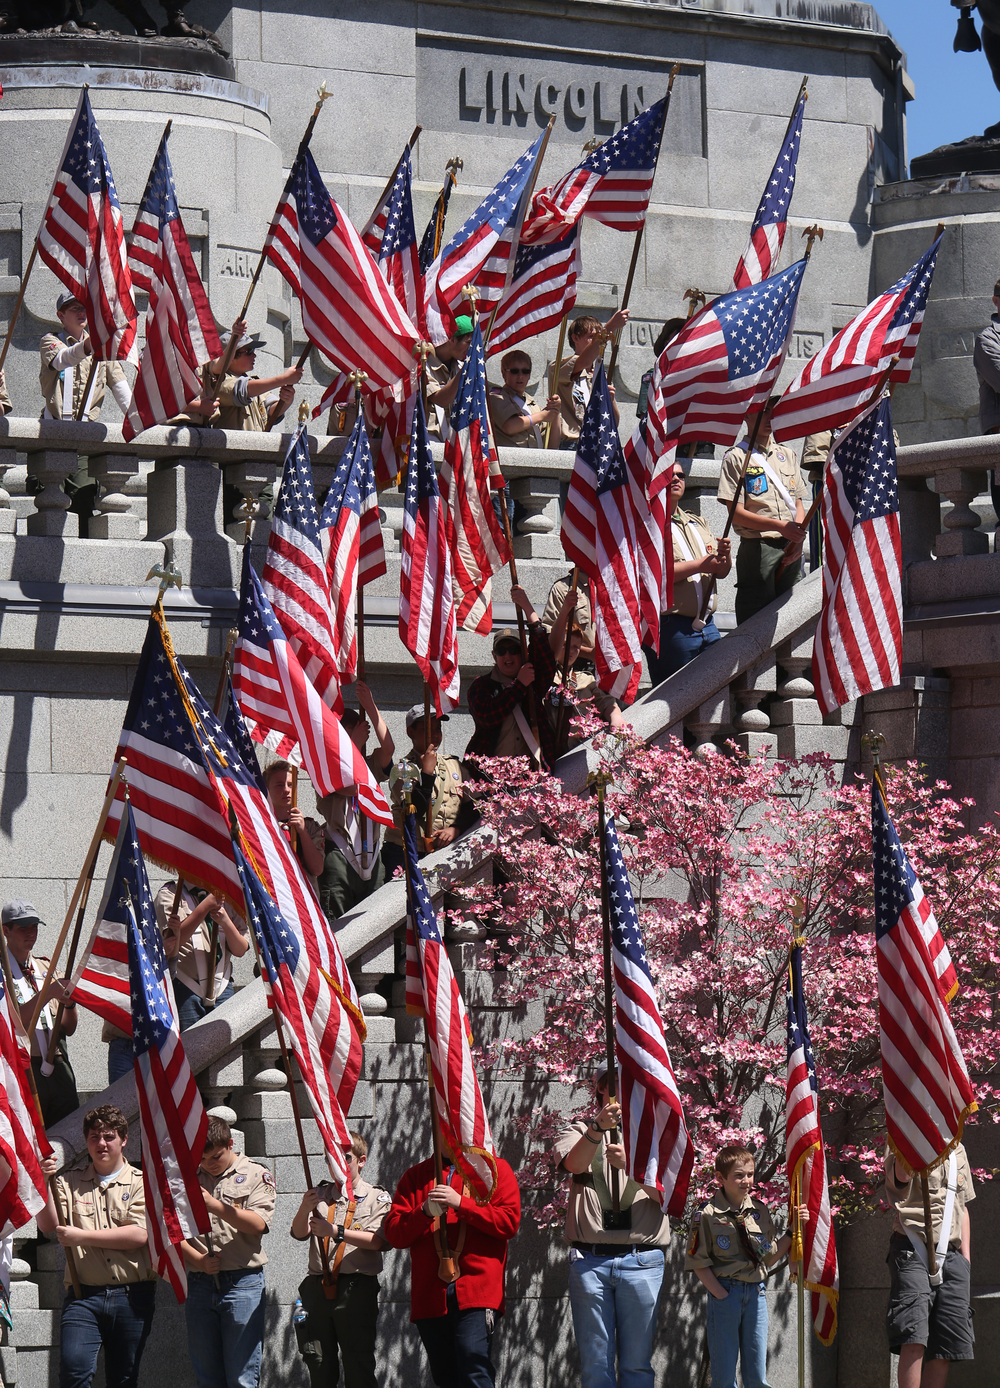 Boy scouts bearing U.S. flags provide the backdrop for the Sunday afternoon ceremony at the tomb. David Spencer/The State Journal-Register